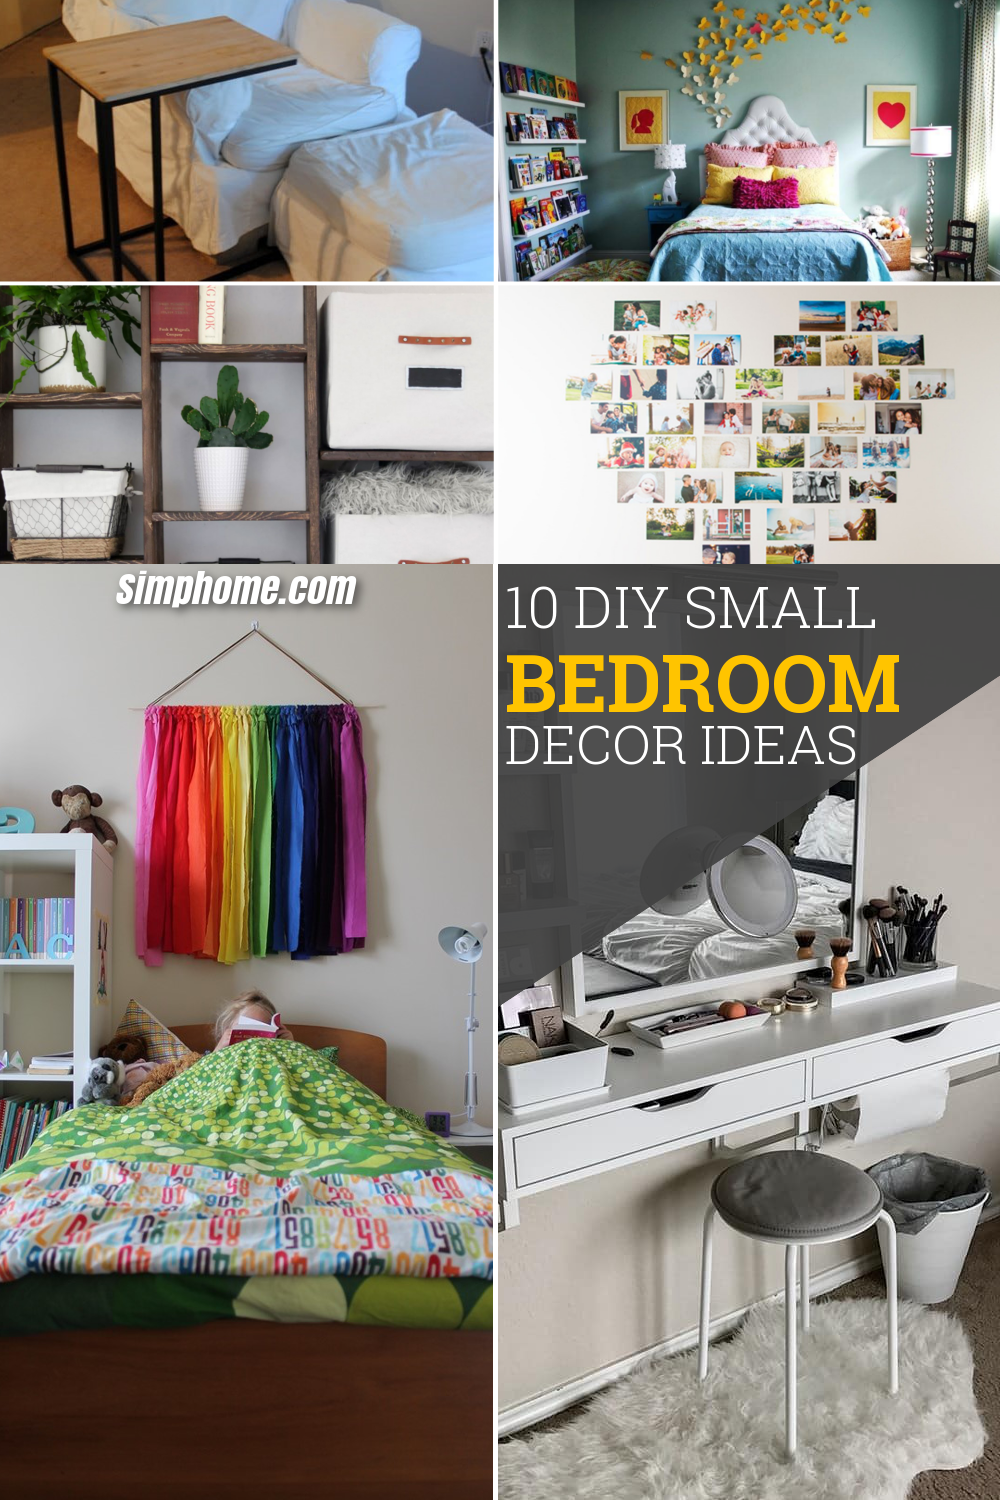 10 DIY Small Bedroom Decorating Ideas via simphome pinterest long